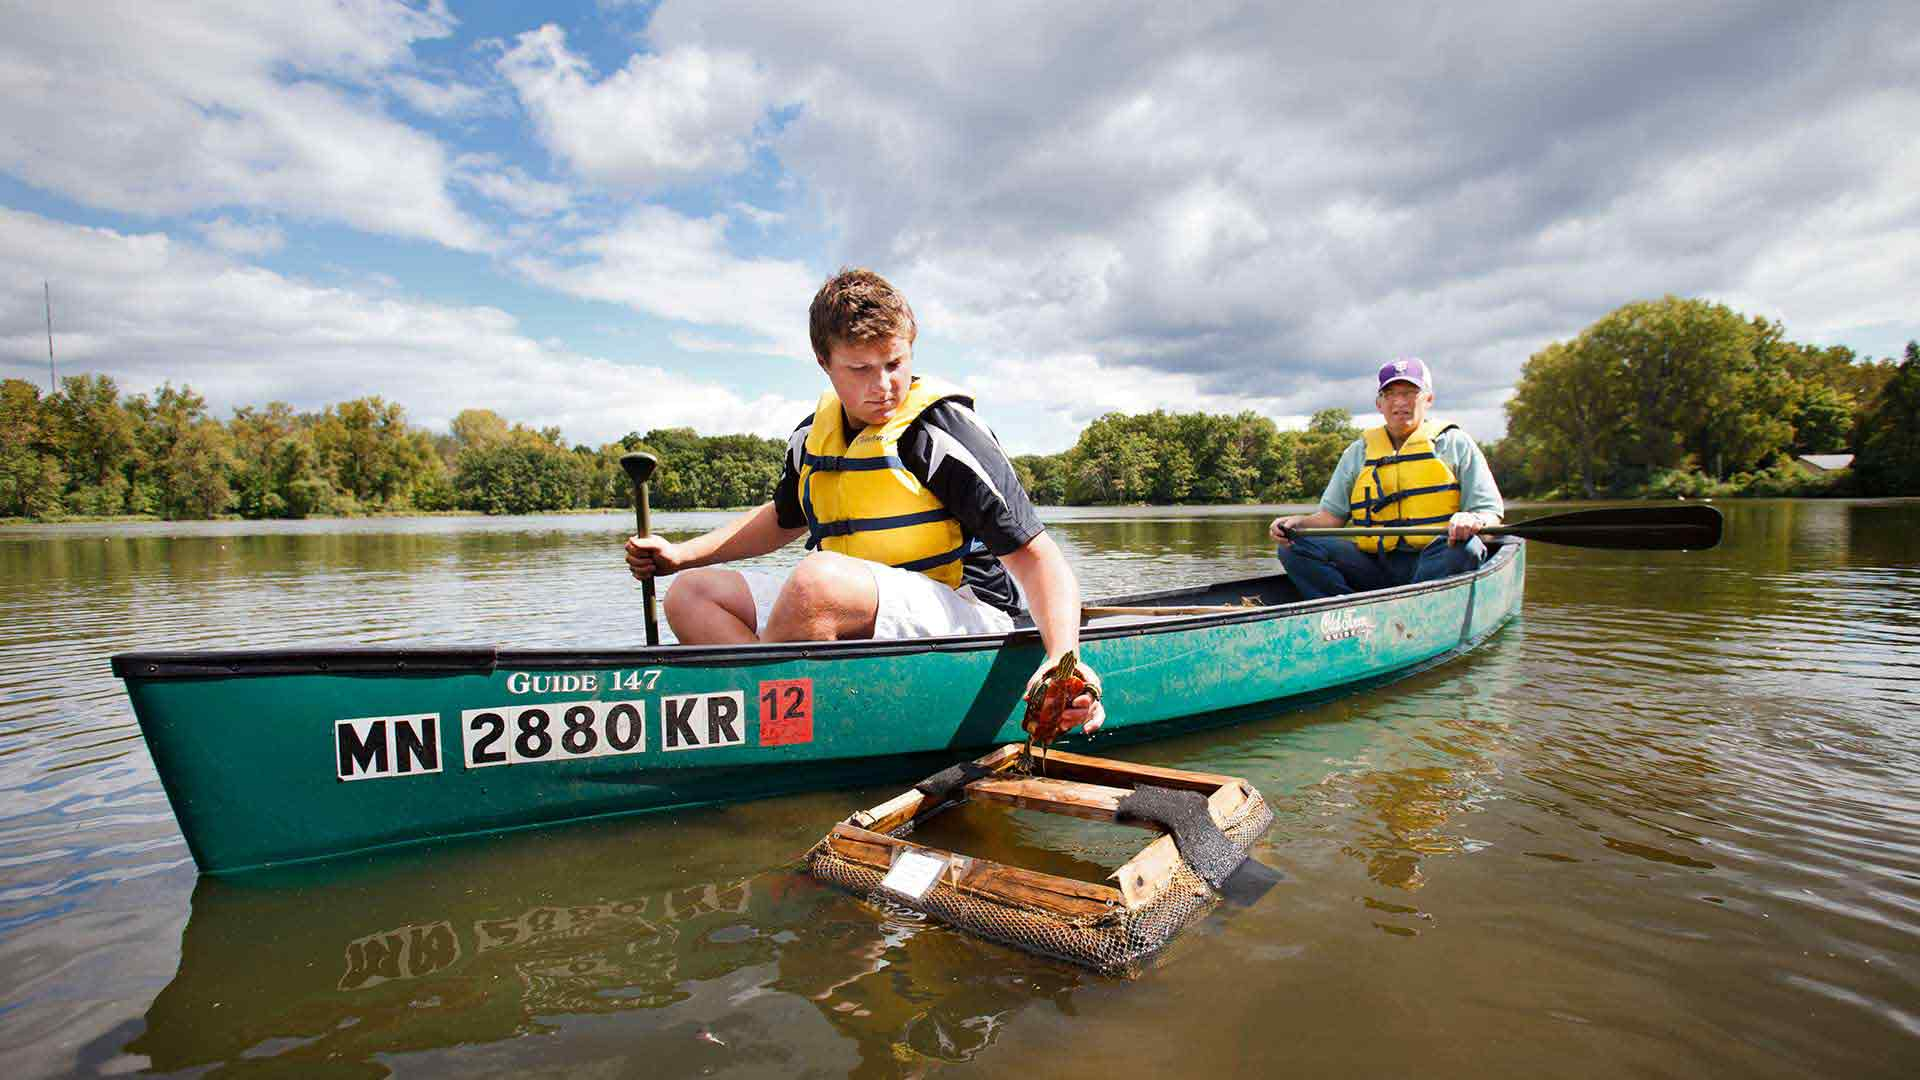 A student and faculty member examine a turtle from a canoe in a river.